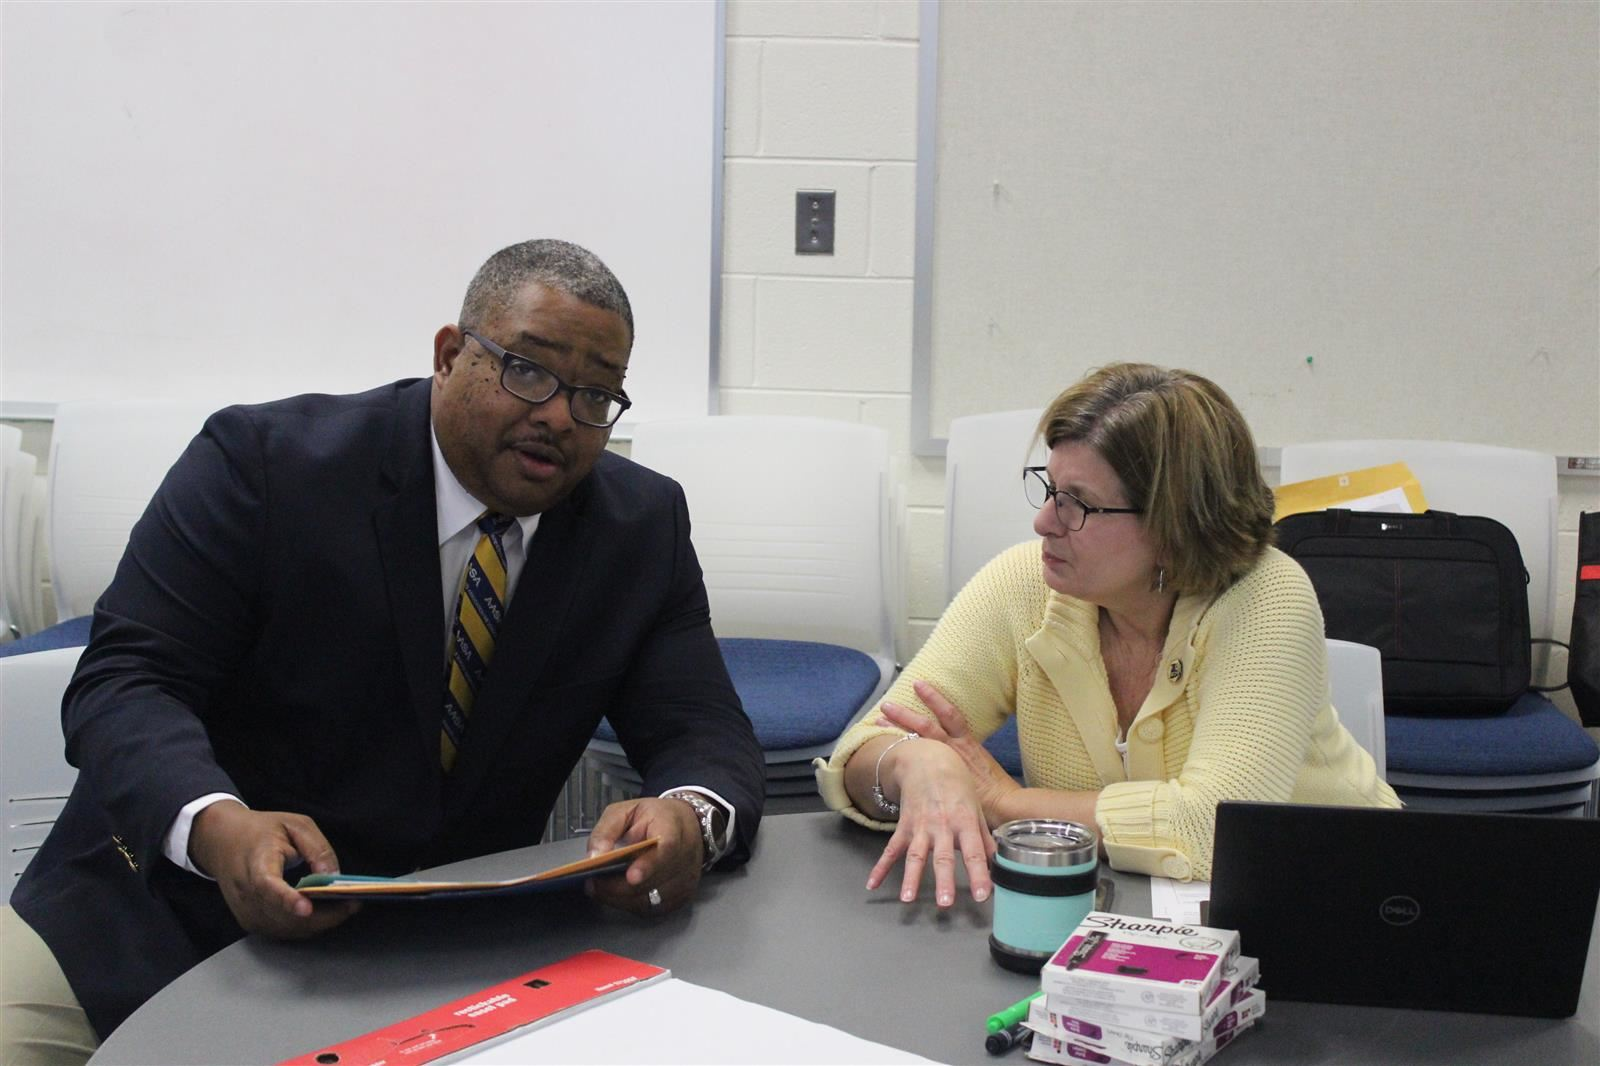 Superintendent Wright and Assistant Superintendent Ward working together for HCPS.